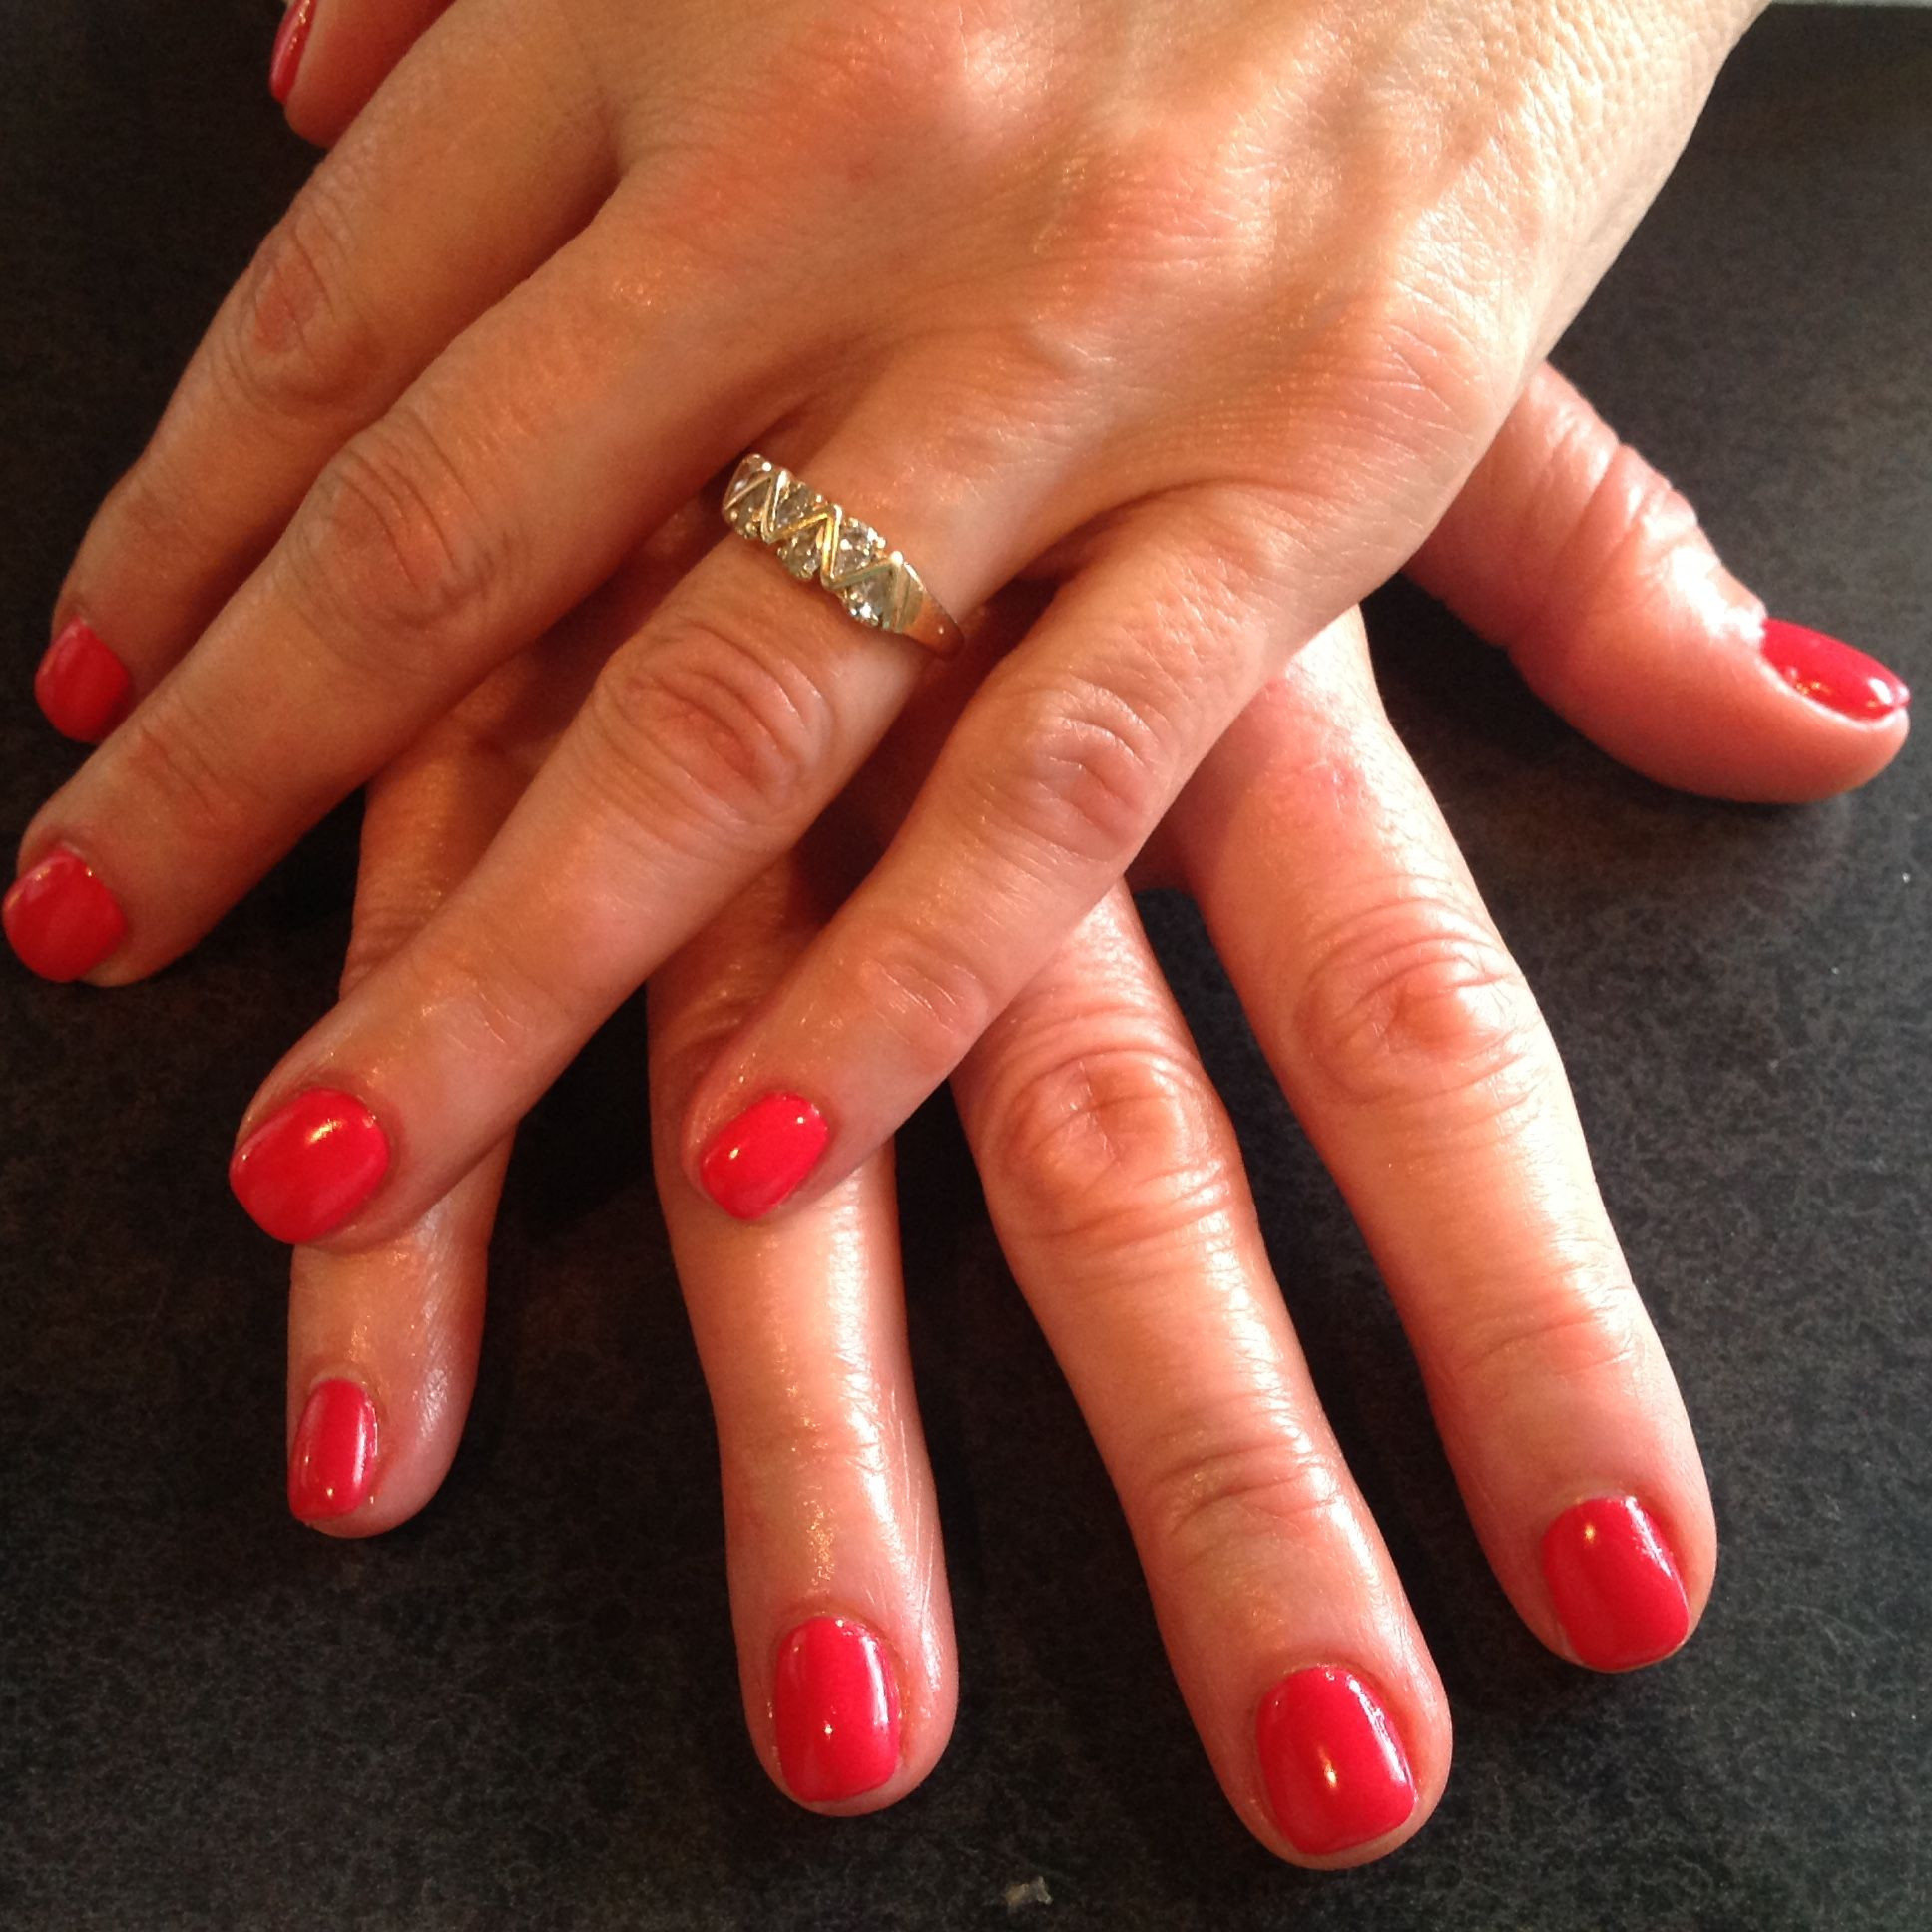 LCN Gel nails done by Andrea. OPI gel nail color from the New ...